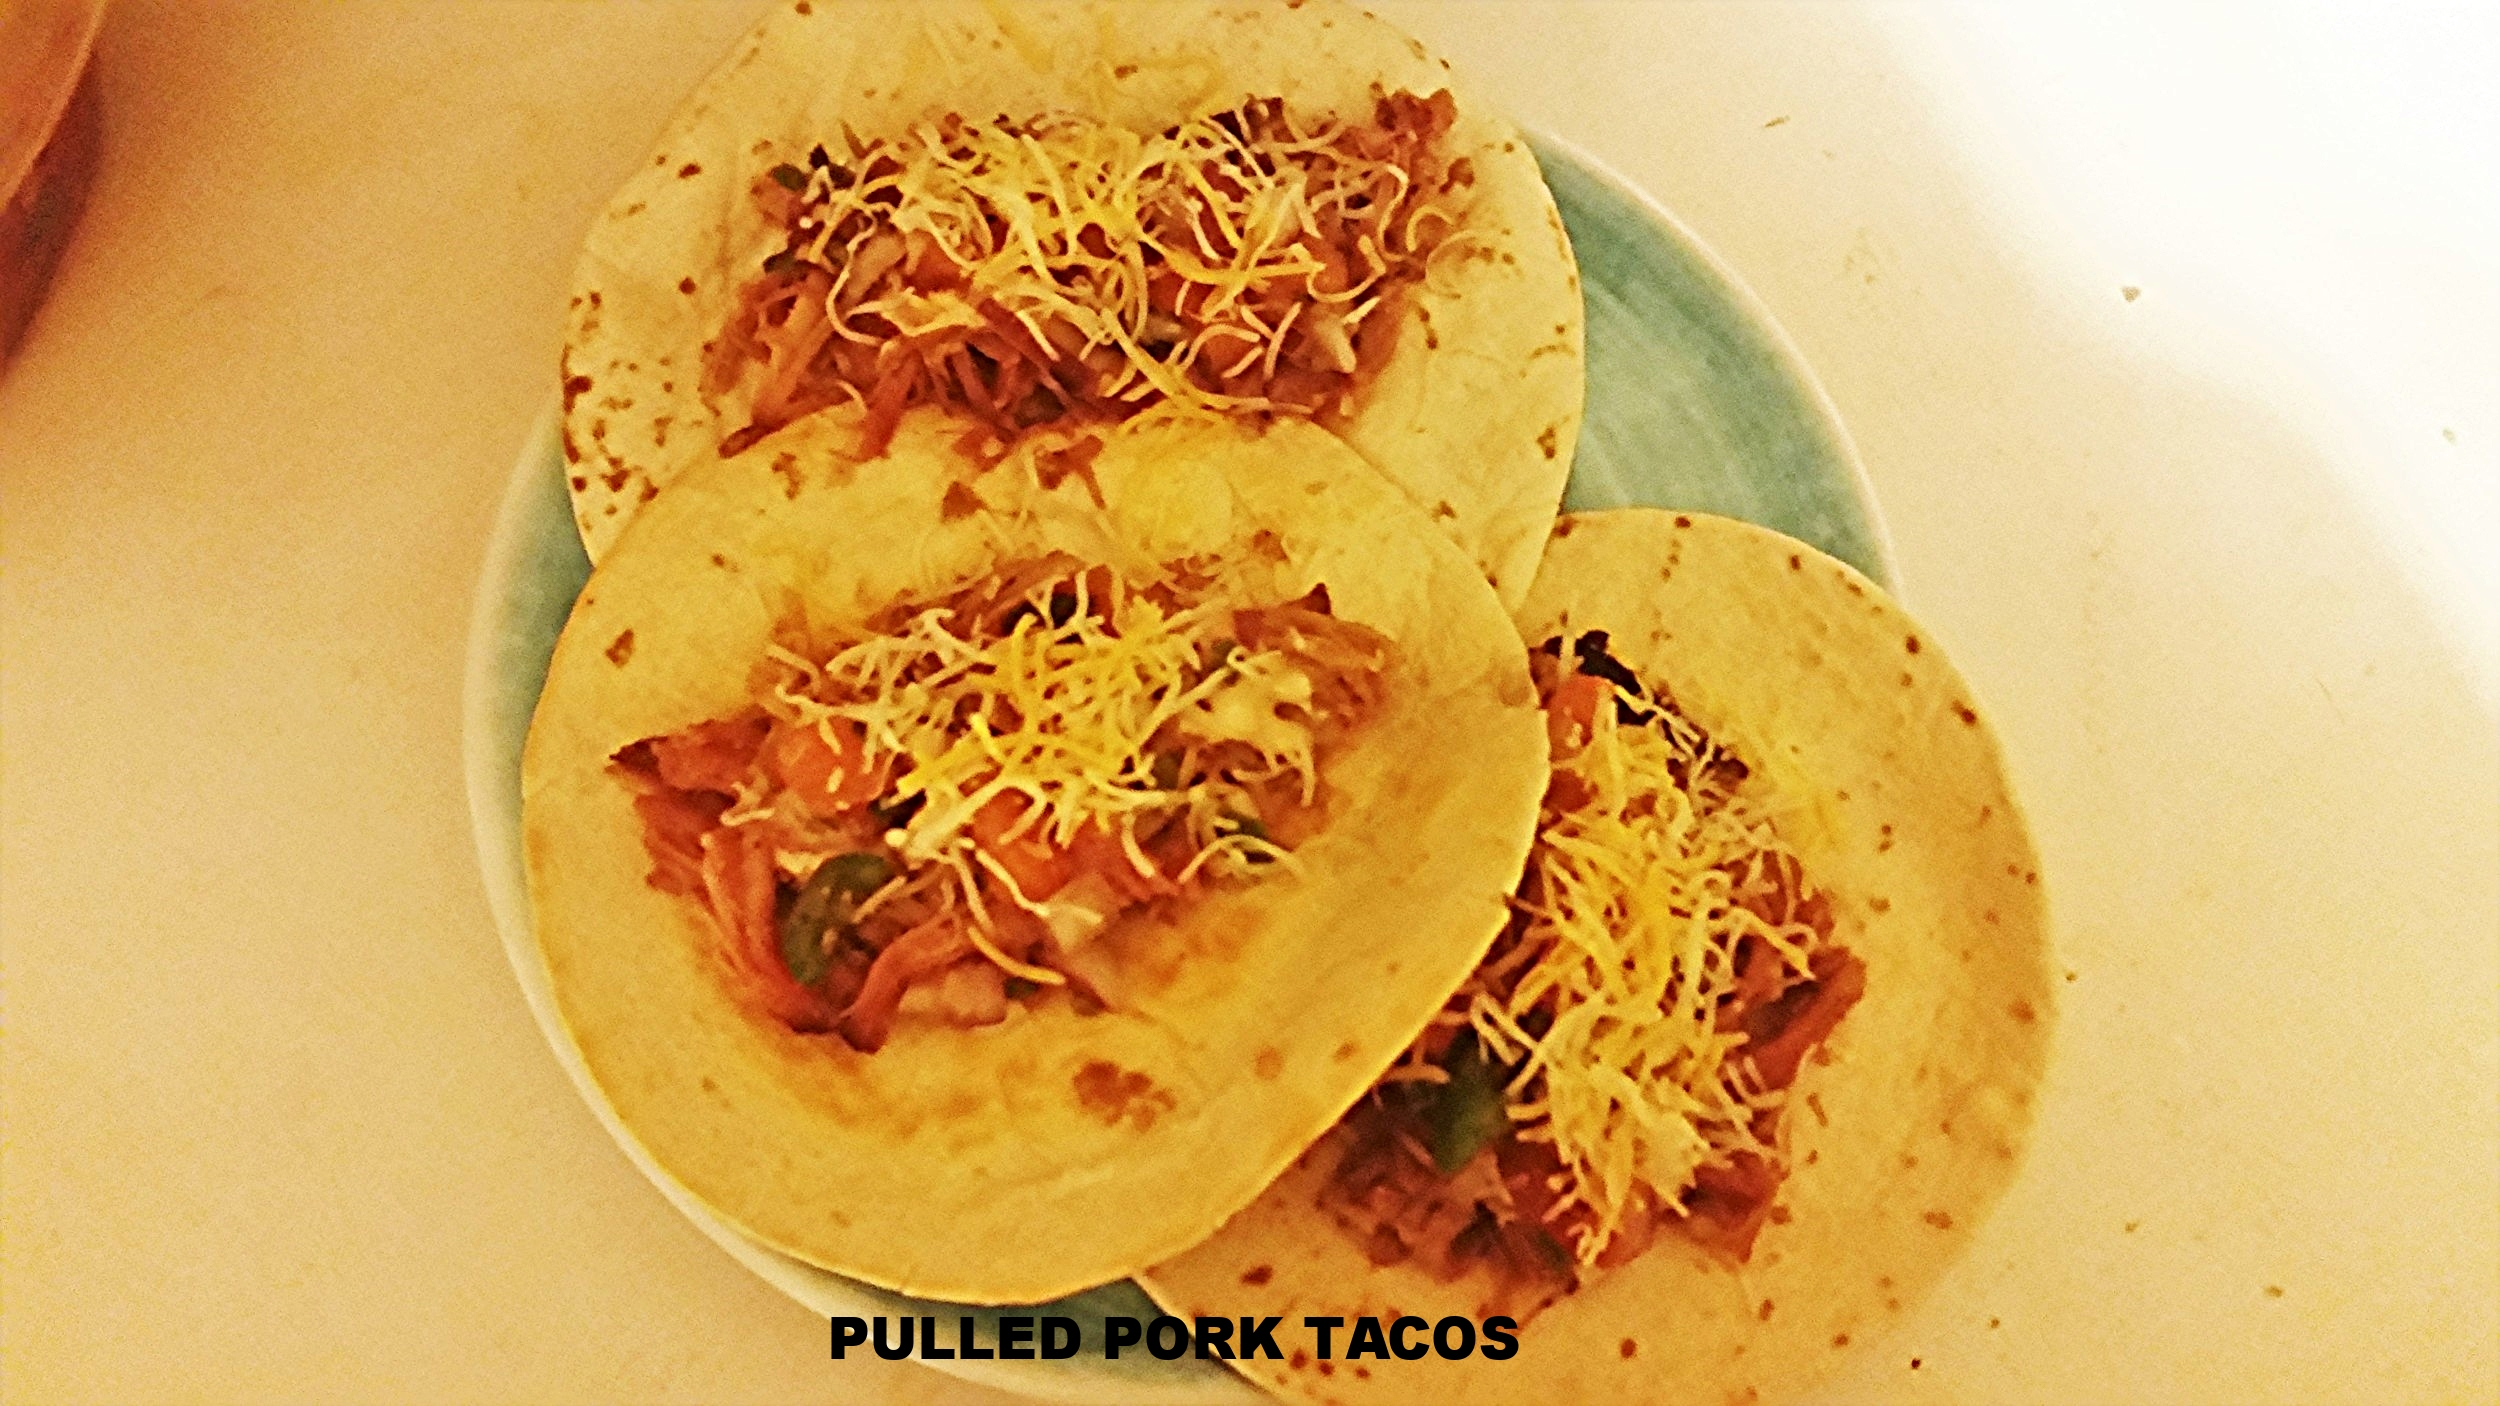 OfficialPorkTacos.jpg